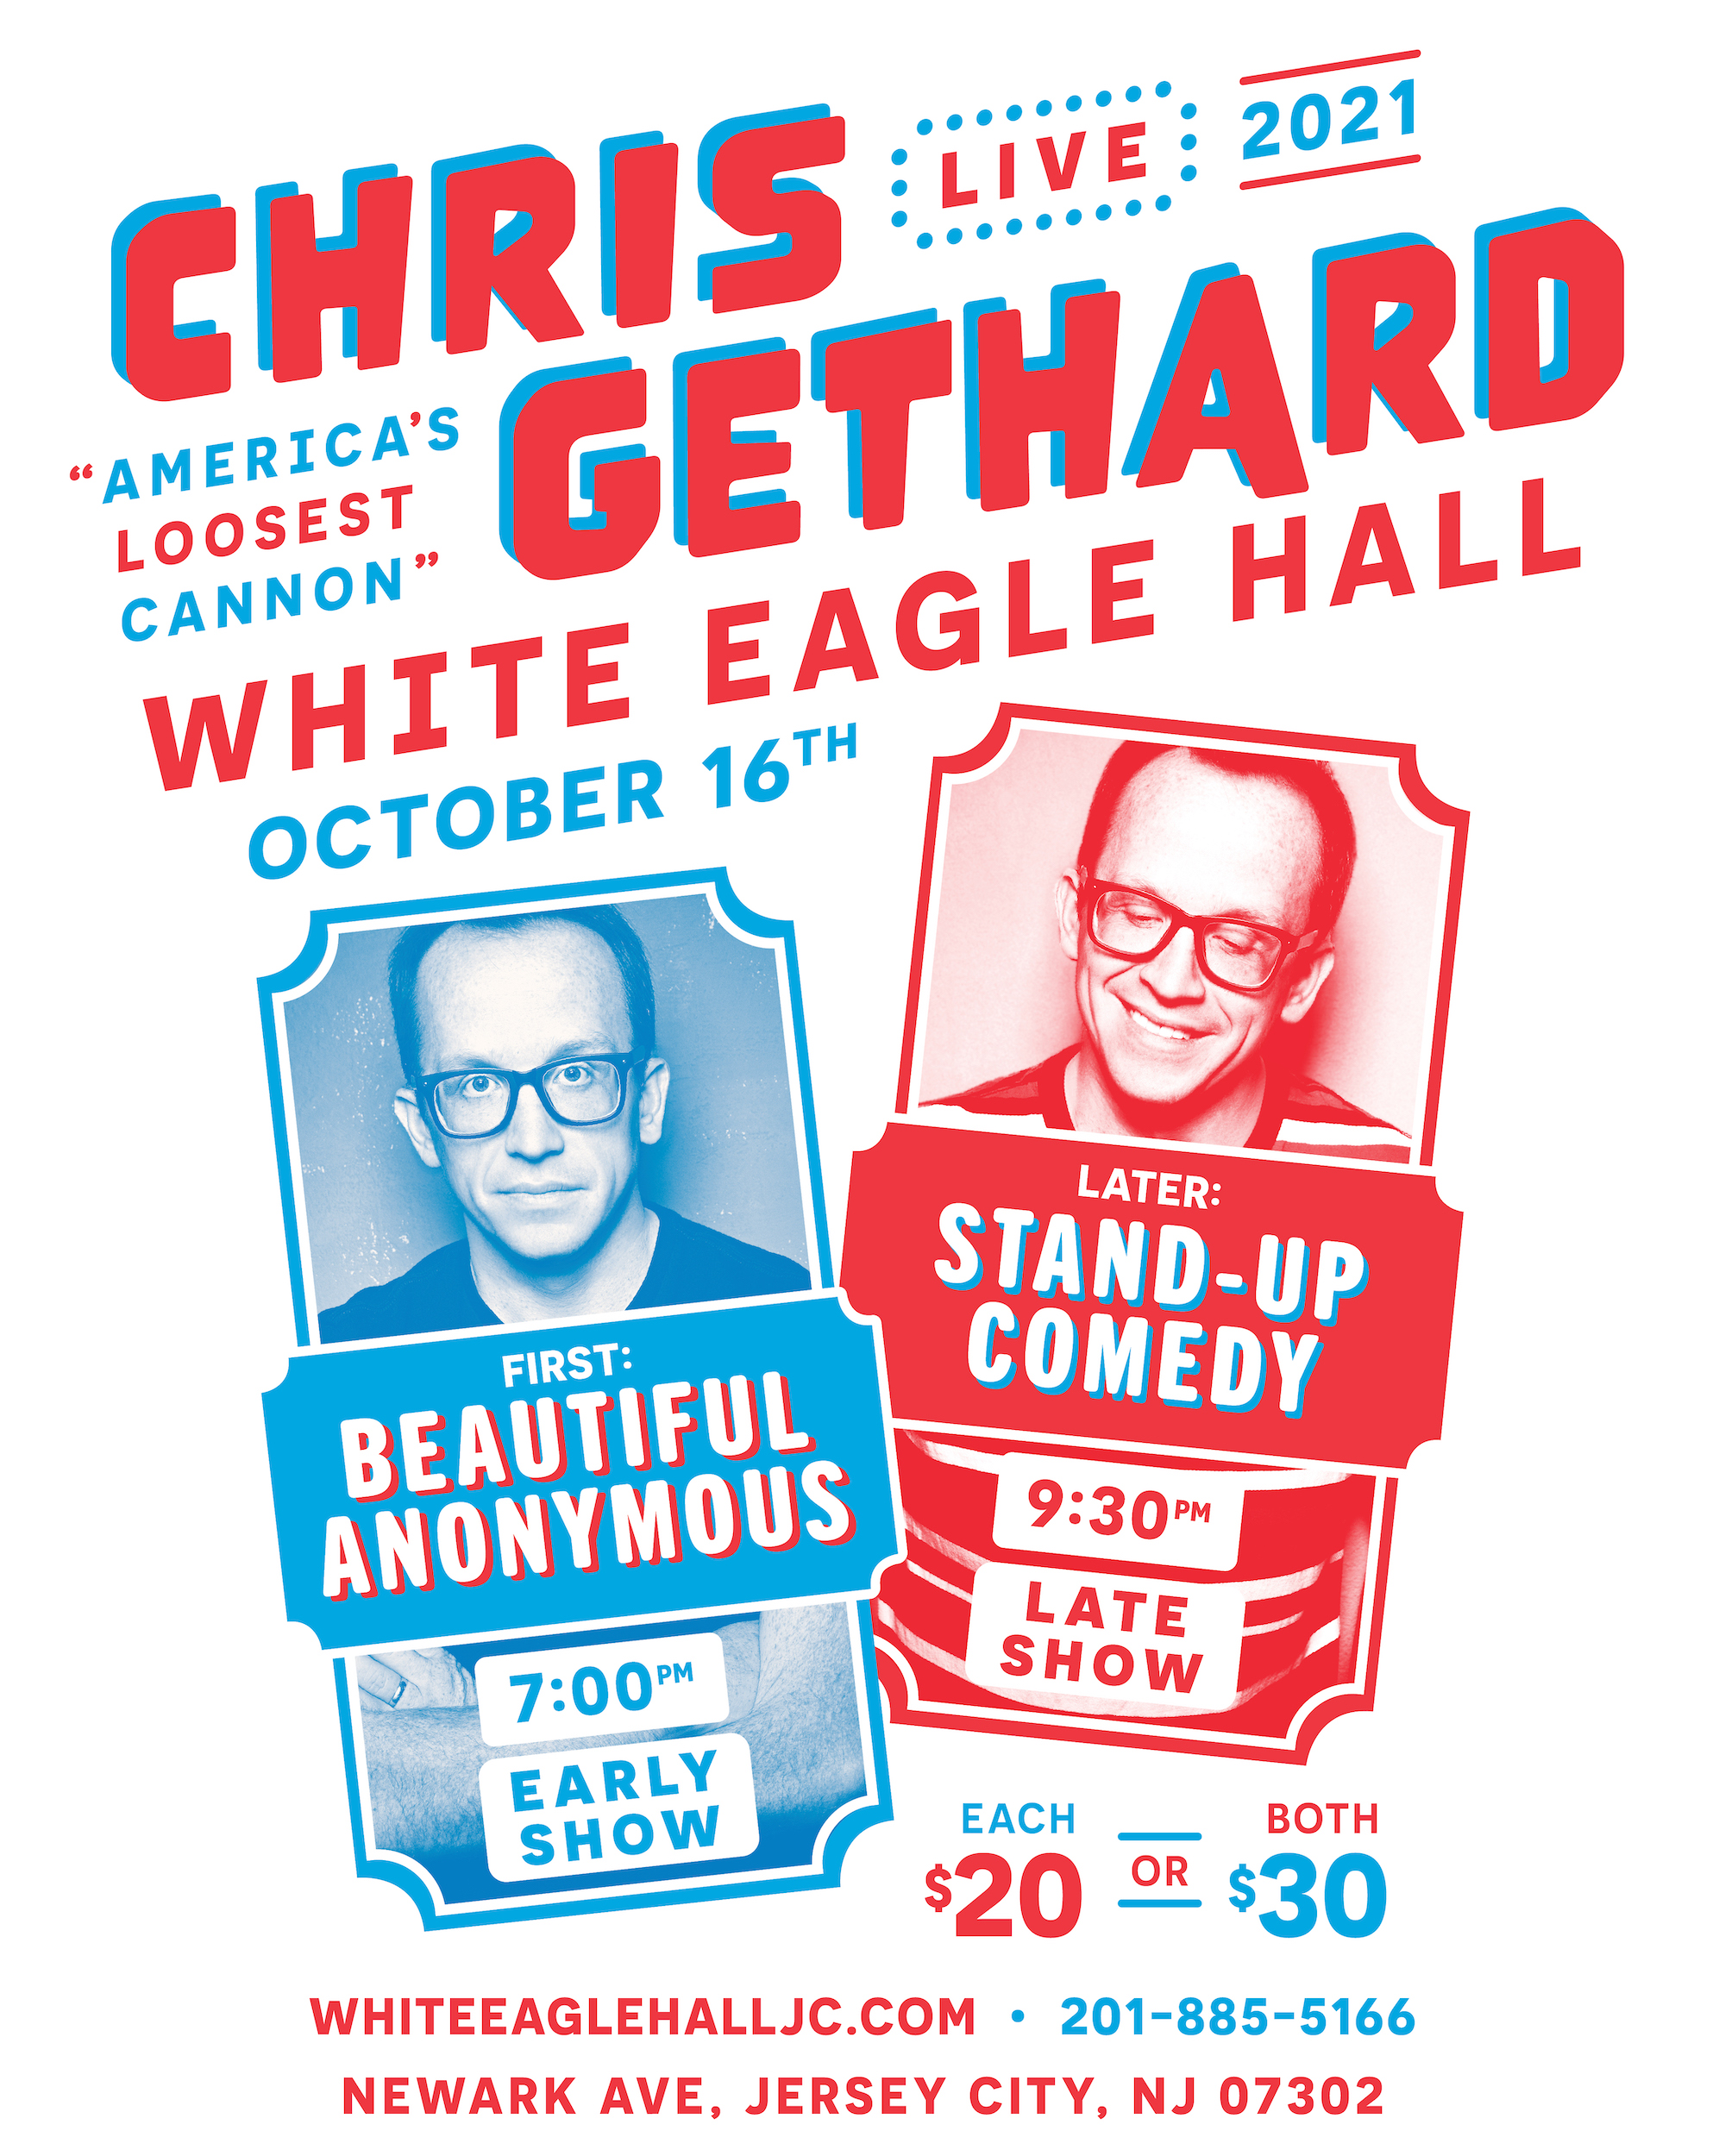 Chris Gethard - America's Loosest Cannon Tour: